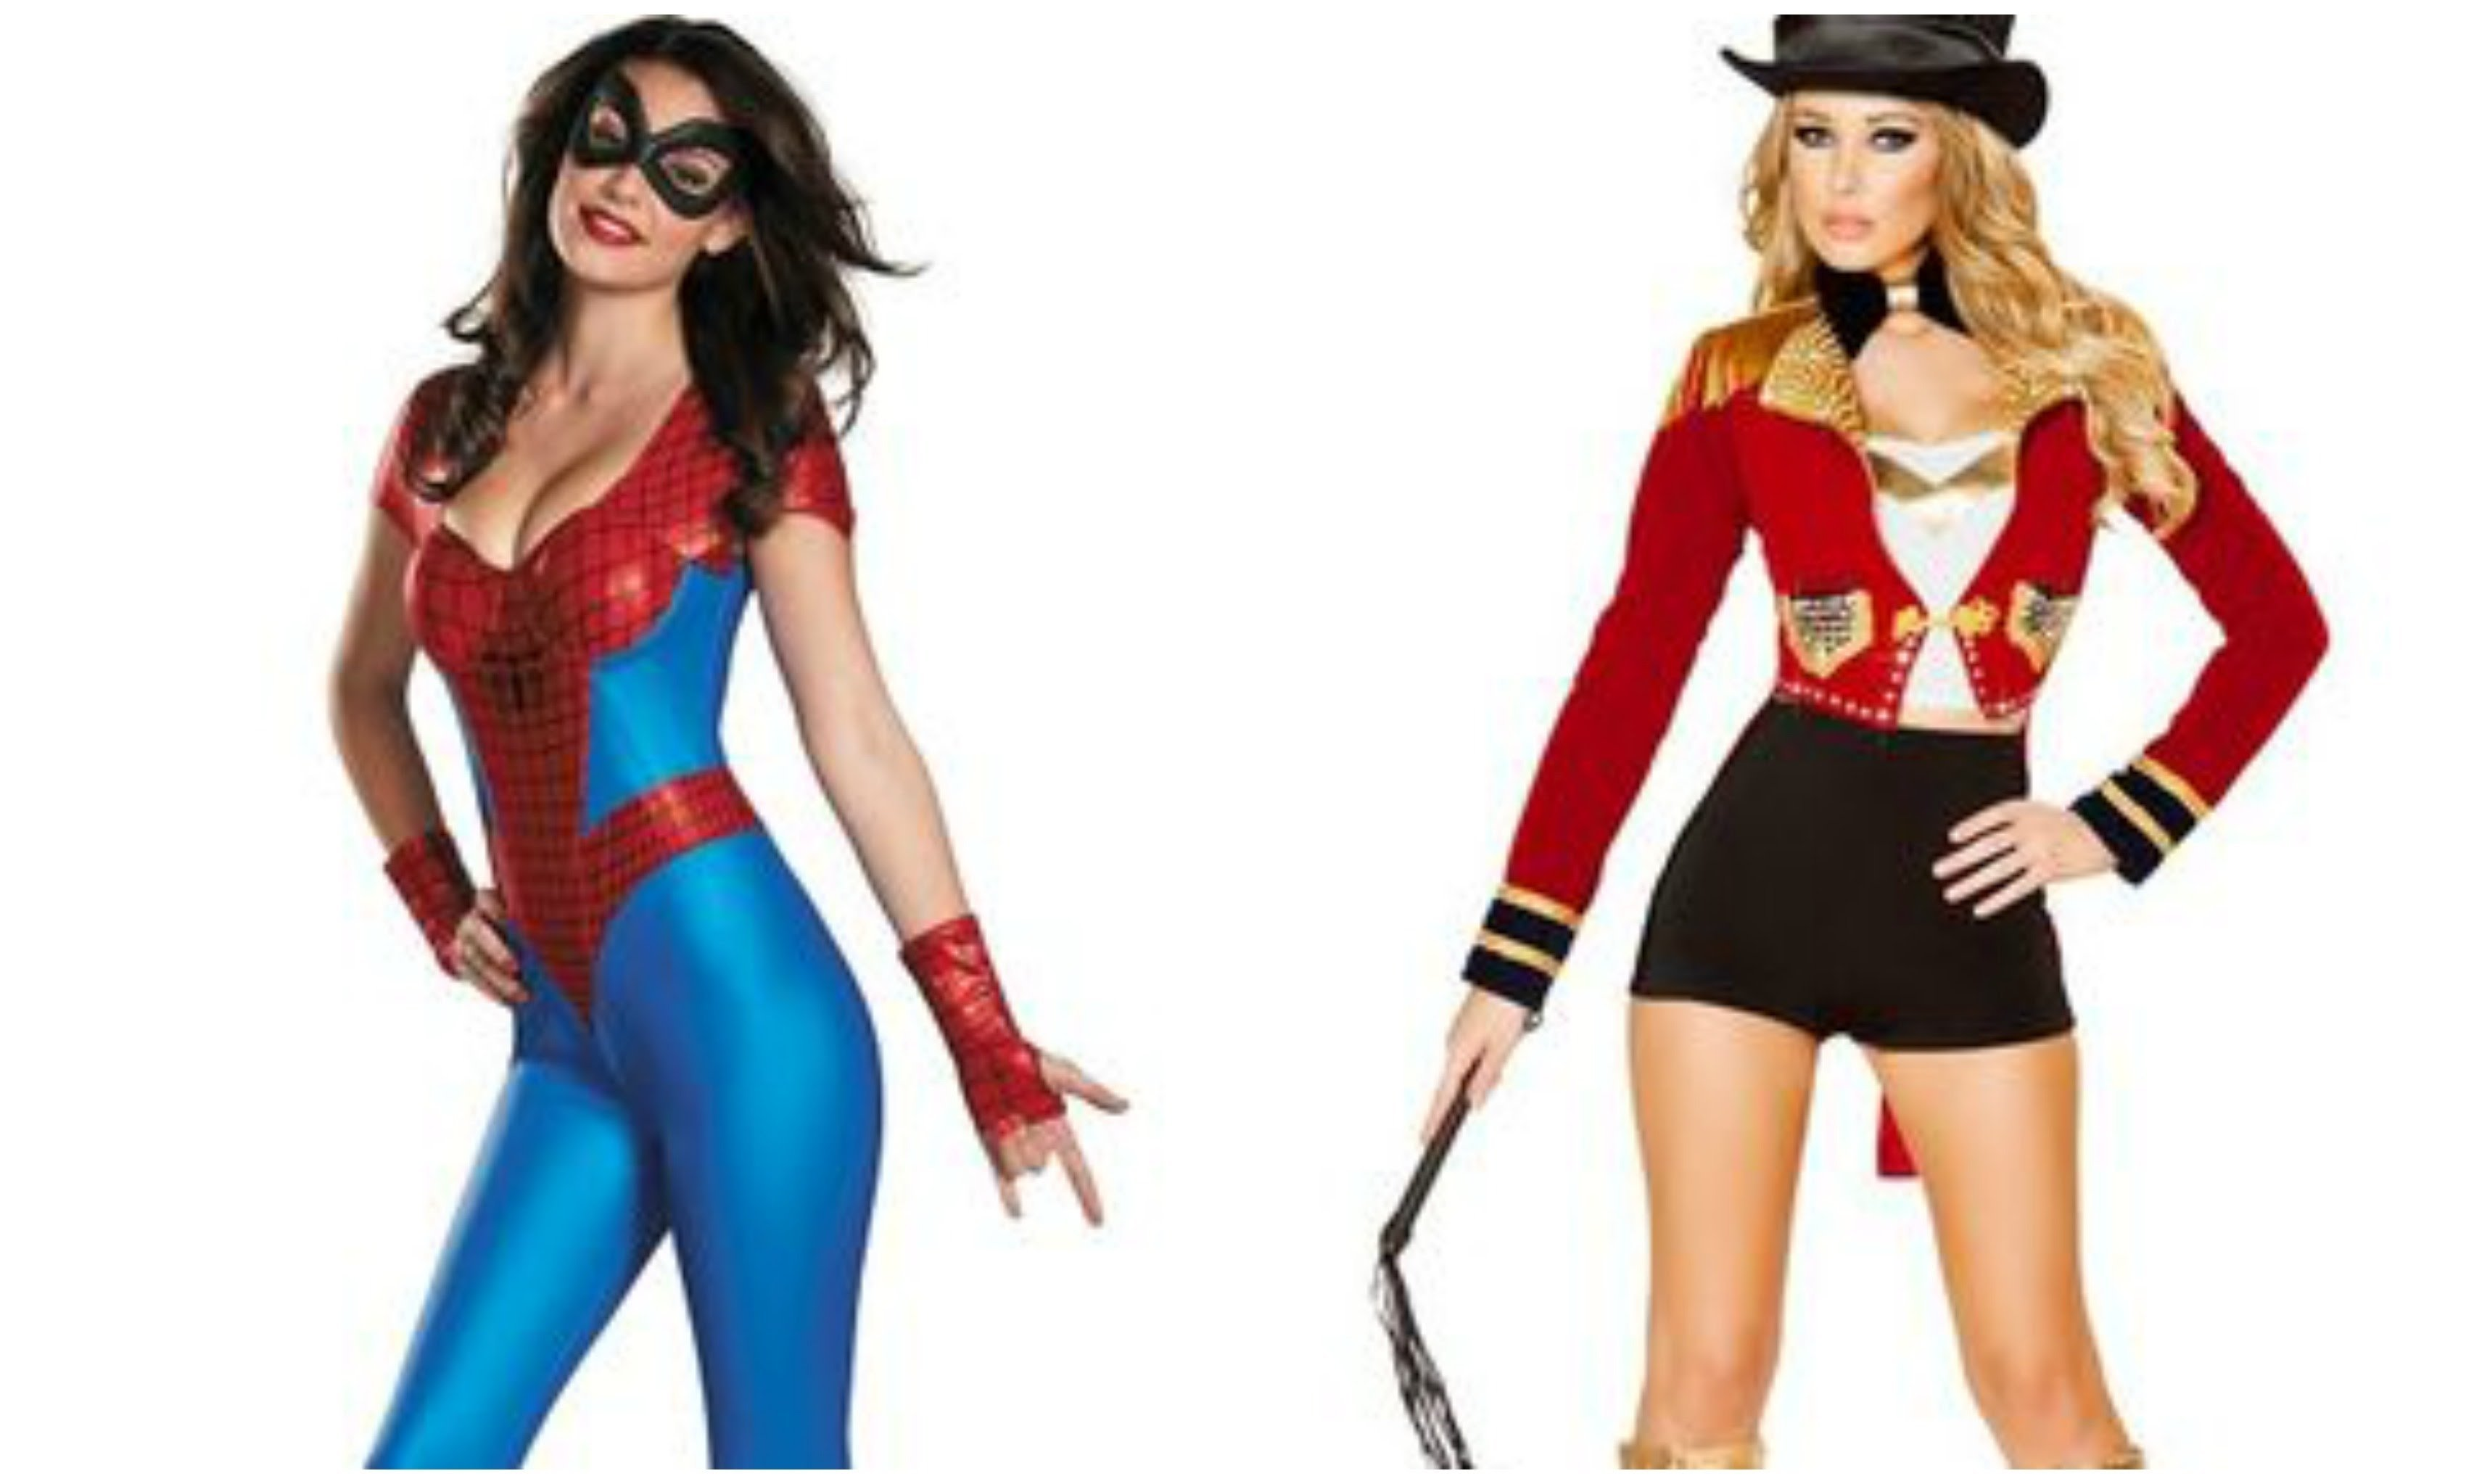 10 Pretty Cheap Halloween Costumes Ideas For Women 61 costume ideas for best 25 teen halloween costumes ideas on 1 2020